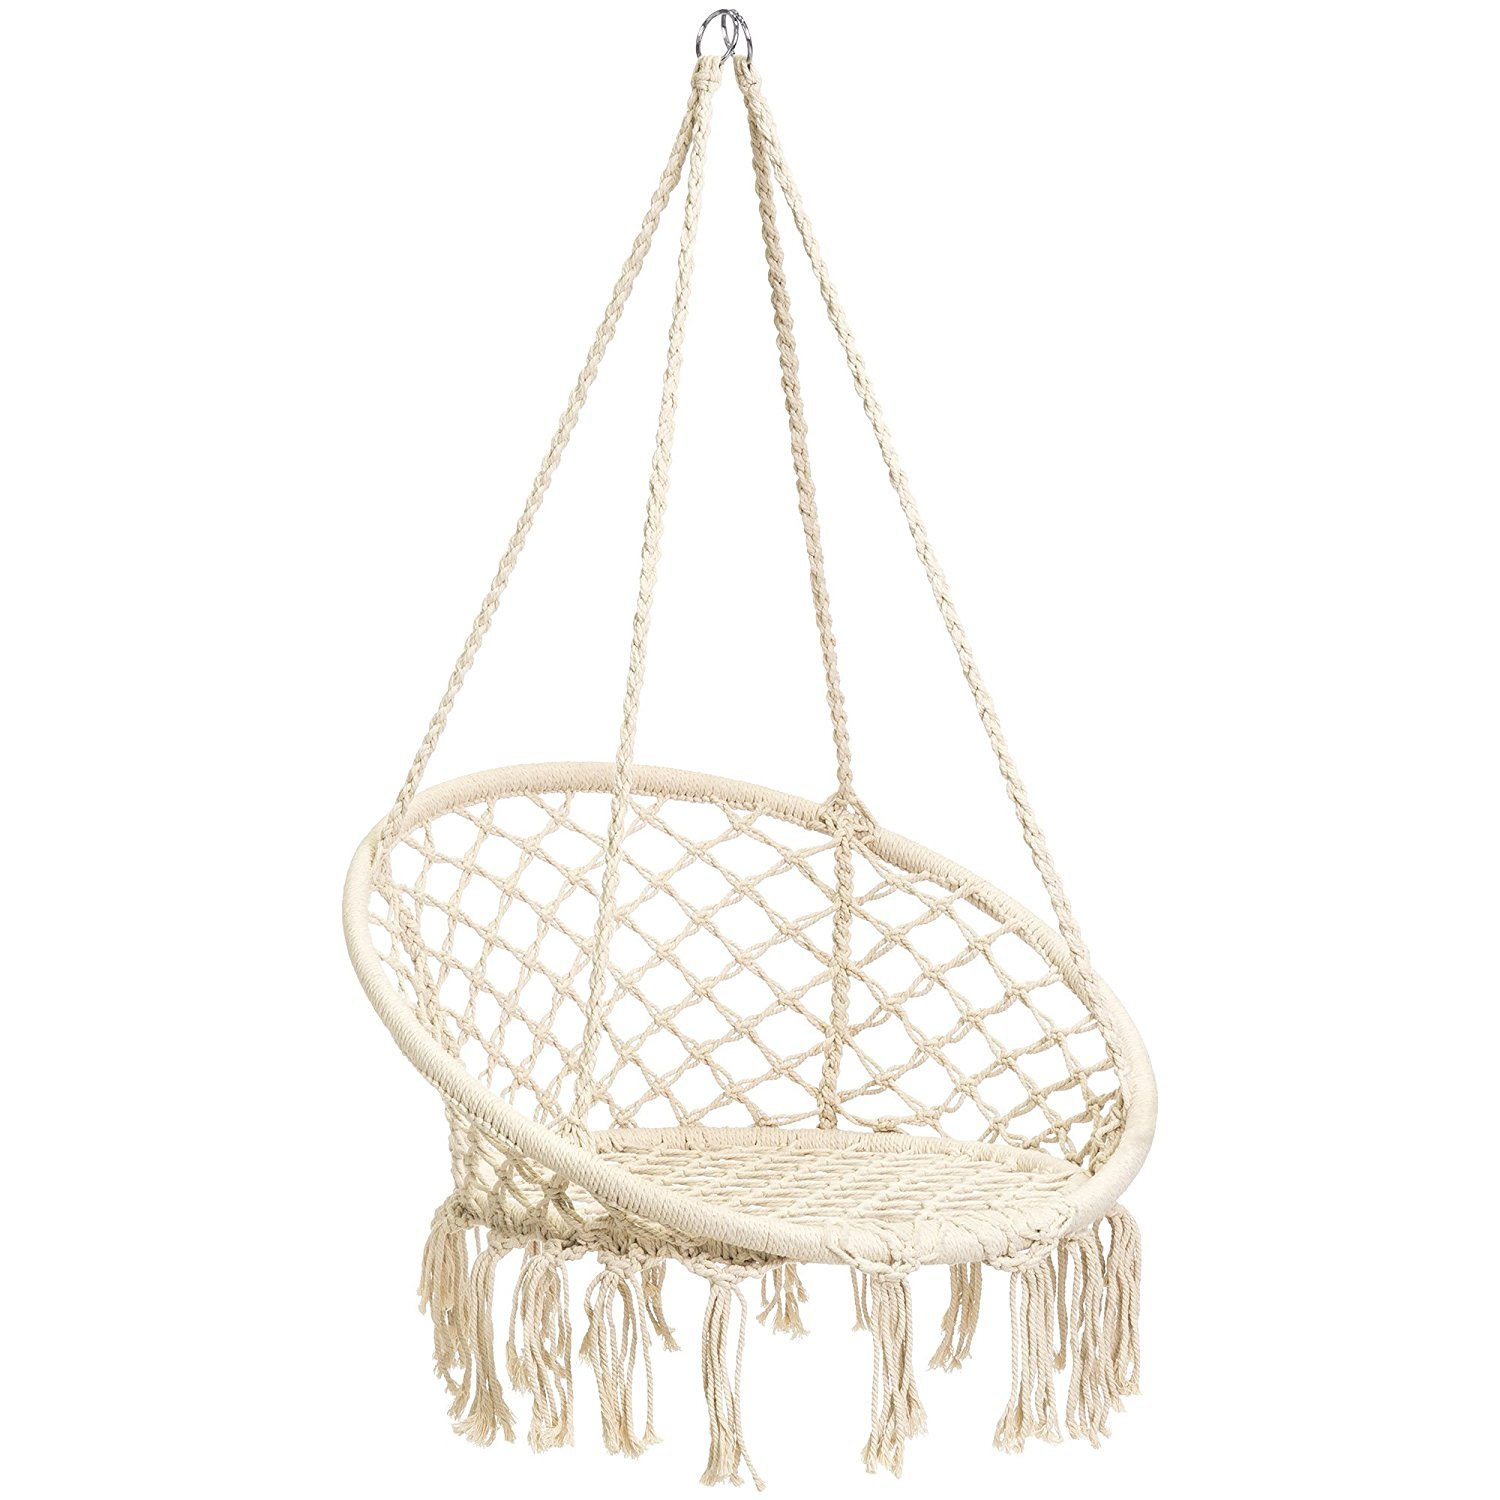 Hammock Macrame Hanging Swing Chair Cotton Egg Rope ...